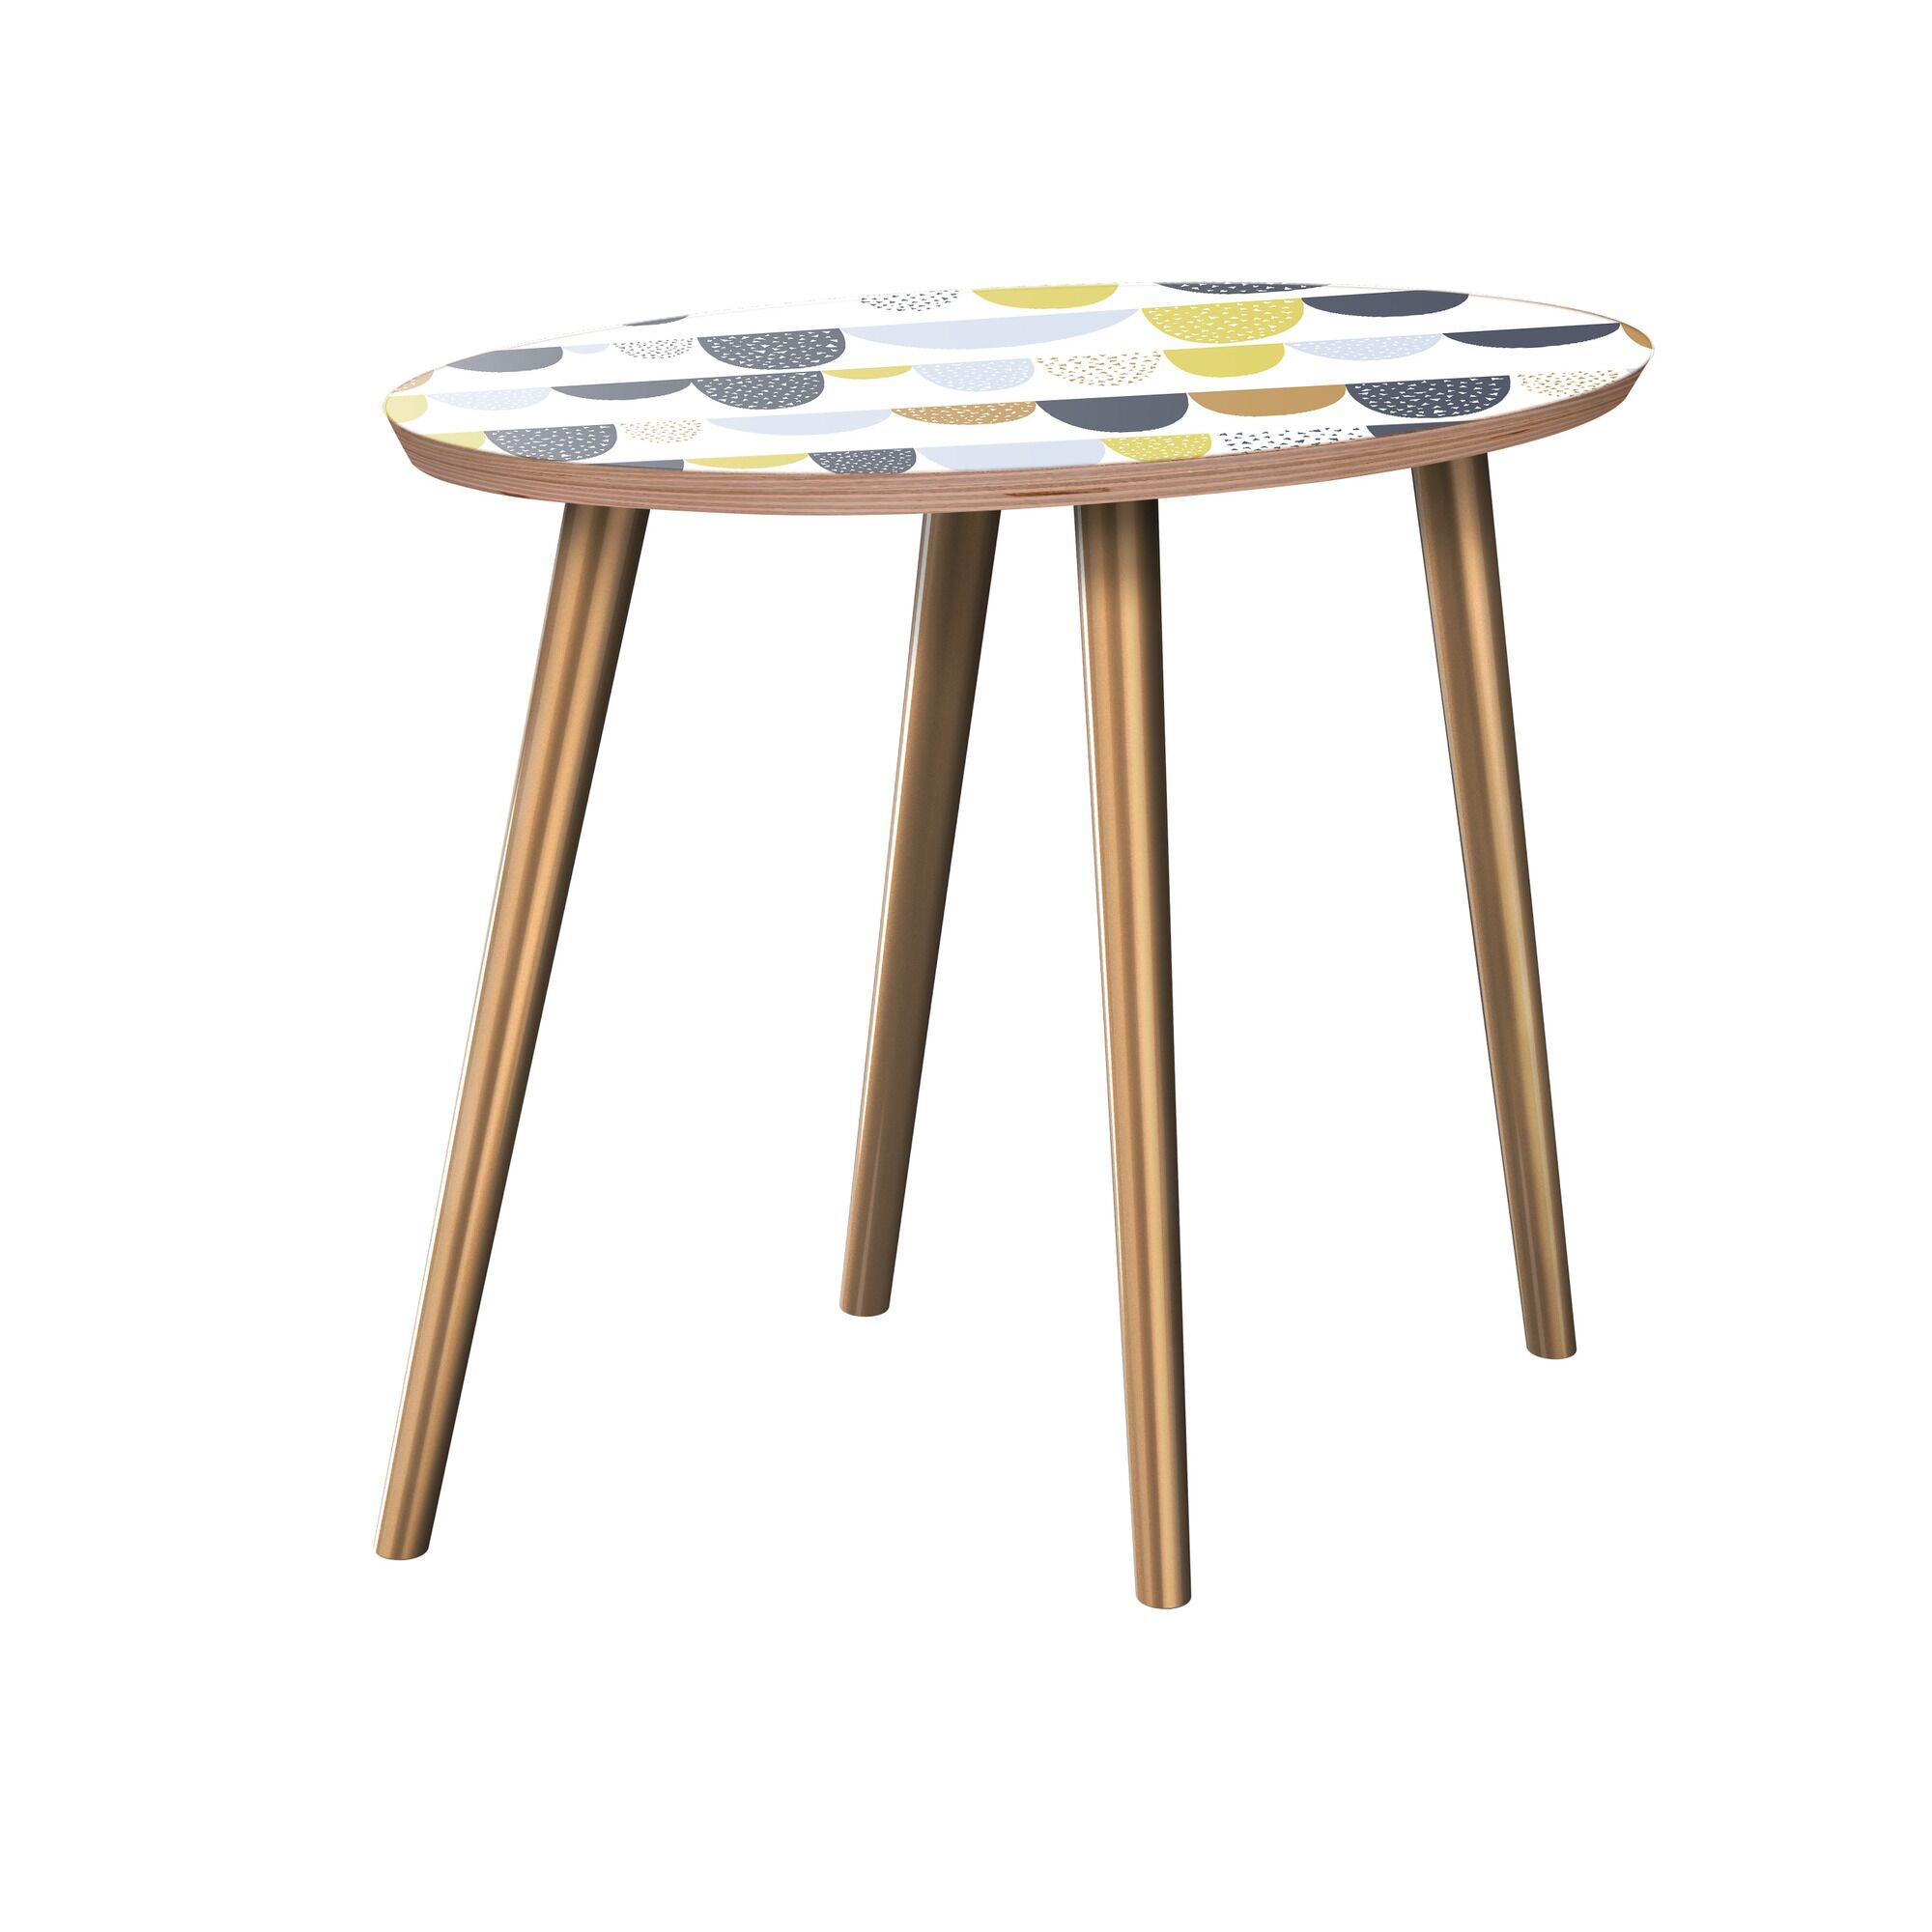 Junius End Table Table Base Color: Brass, Table Top Color: Walnut